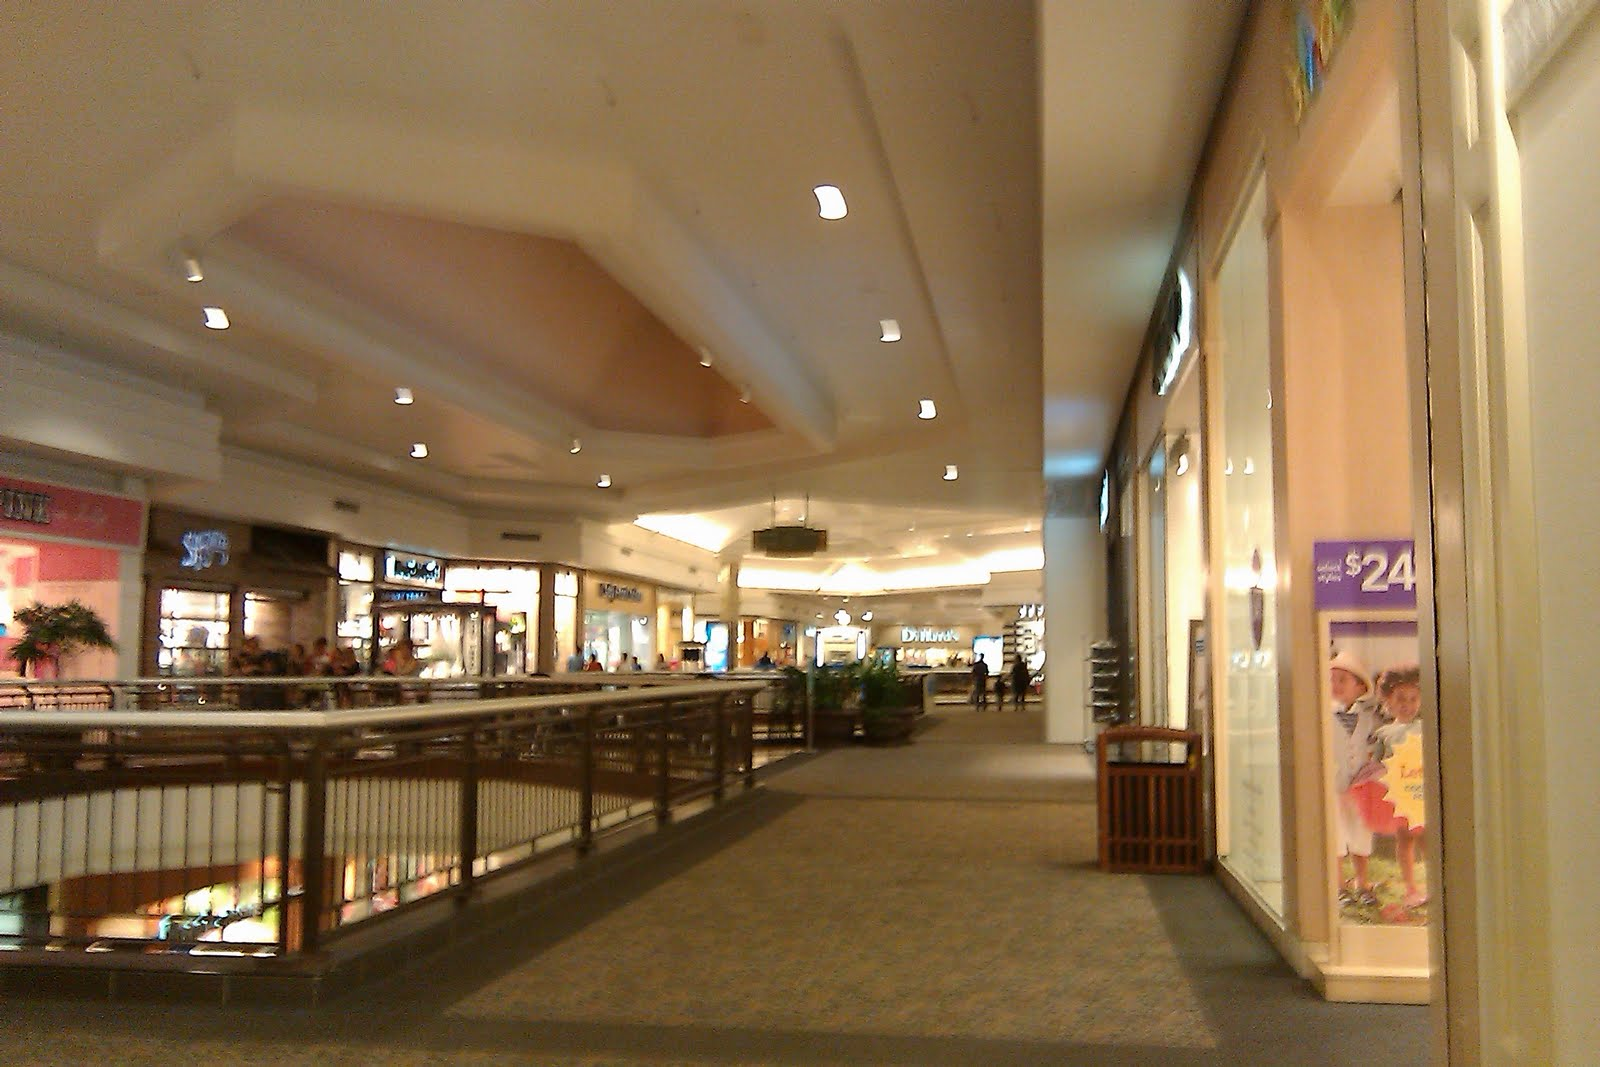 Charlottesville Fashion Square (69 stores) - shopping in 67